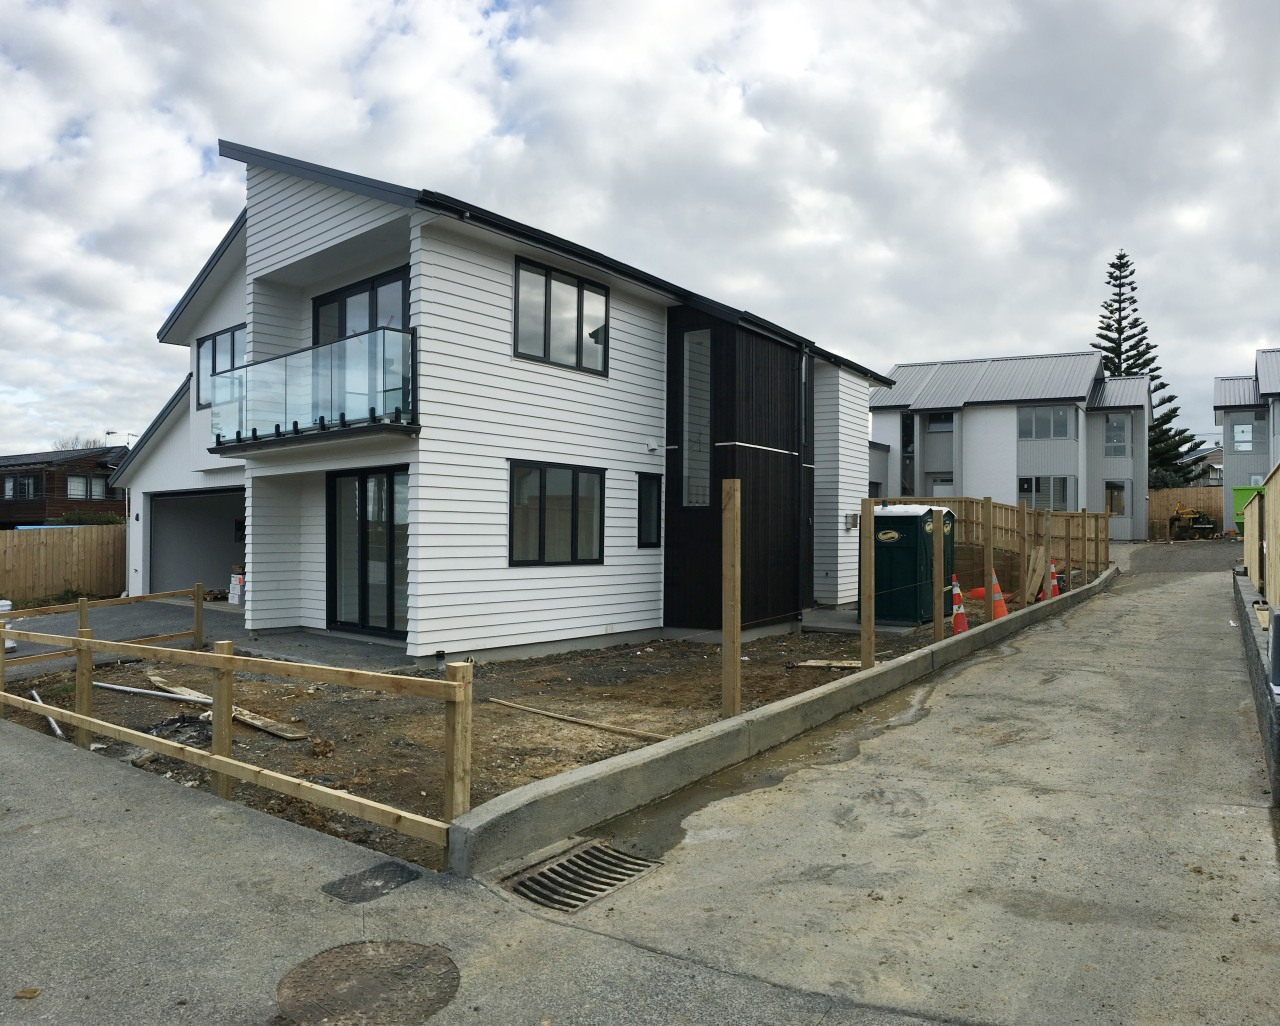 How to reap rewards from your under-utilised section building, facade, home, house, real estate, residential area, siding, gj gardner homes,  new home,  new build